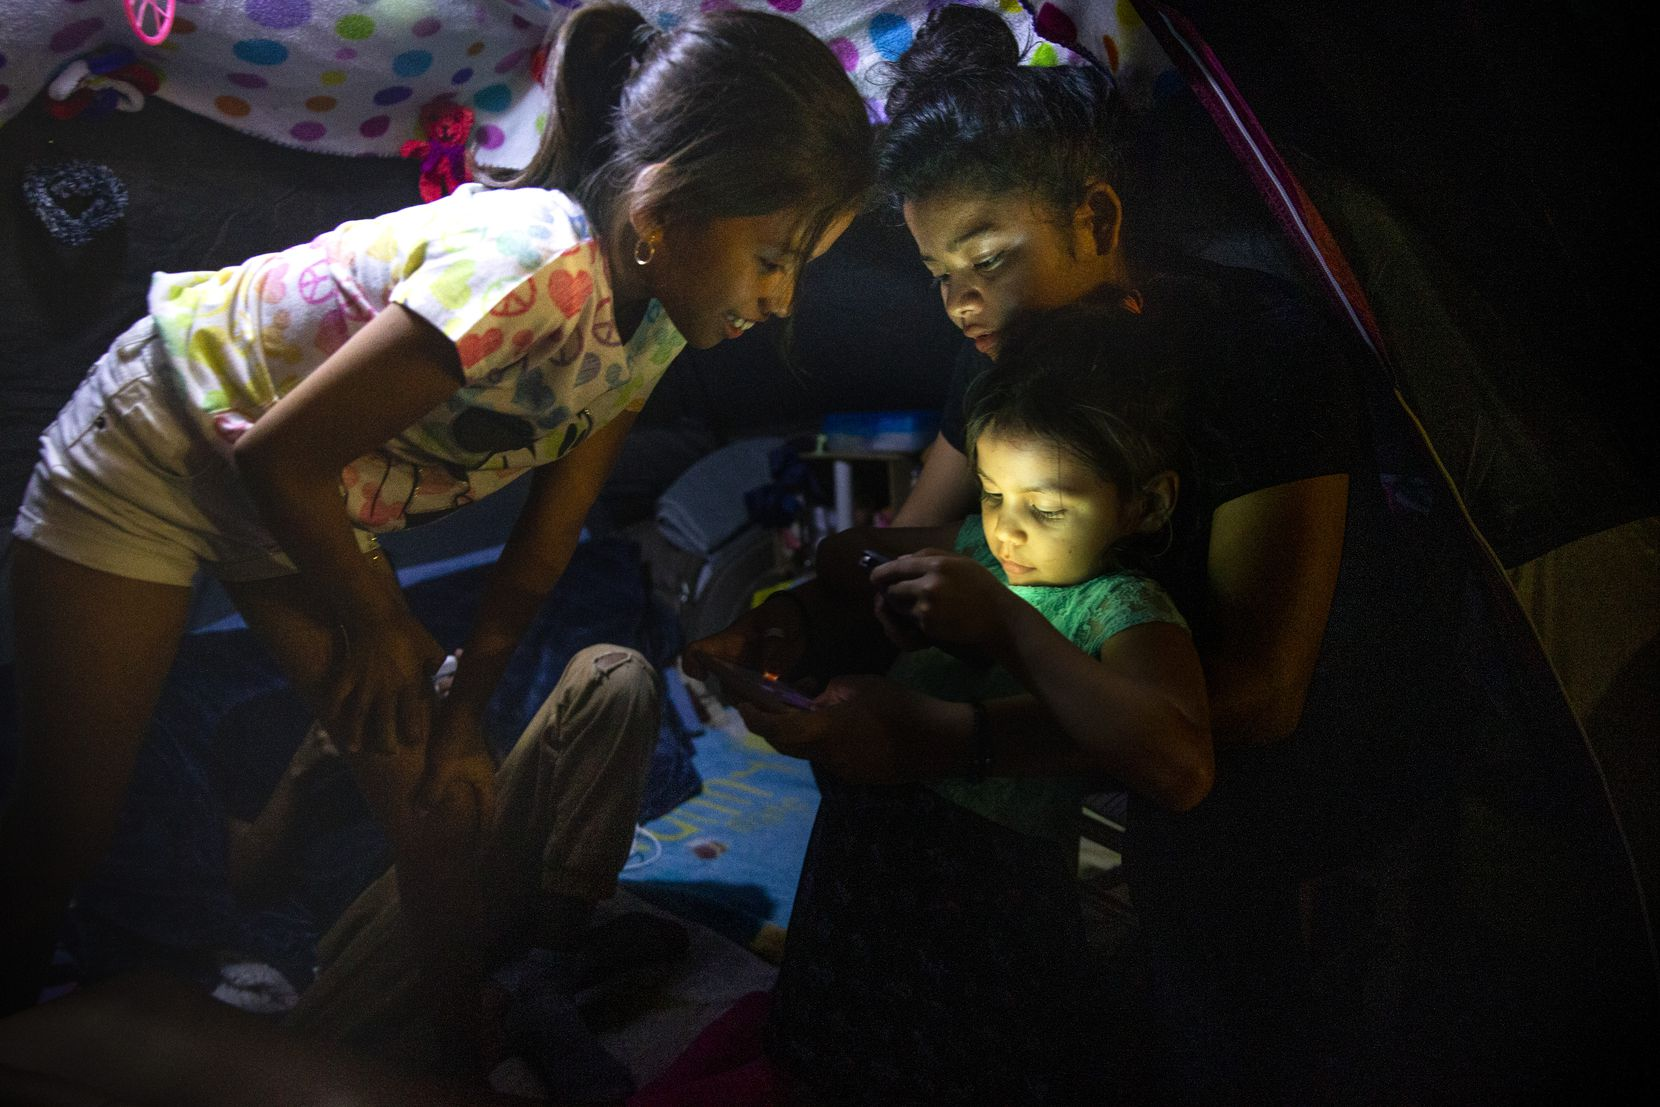 Honduran asylum-seeker Ashlee Sanchez, 14 (center) held Naomi, 6, as they and Genesis (left), 9, talked to a relative via FaceTime at the temporary tent camps in Matamoros, Mexico, on Saturday, Dec. 14, 2019.